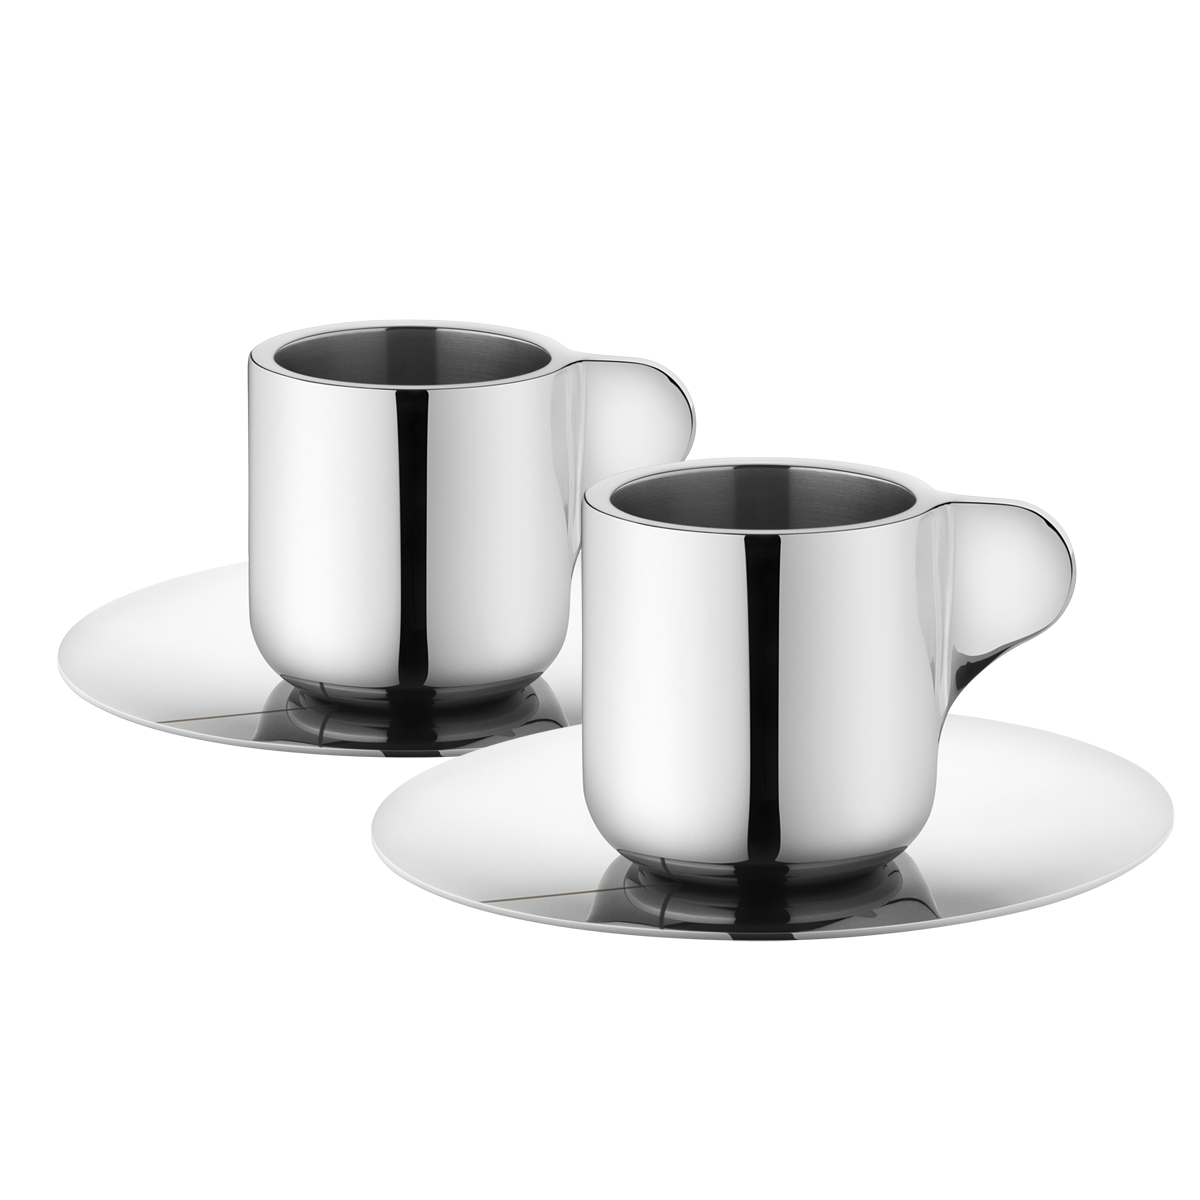 White cup png. Images free download of